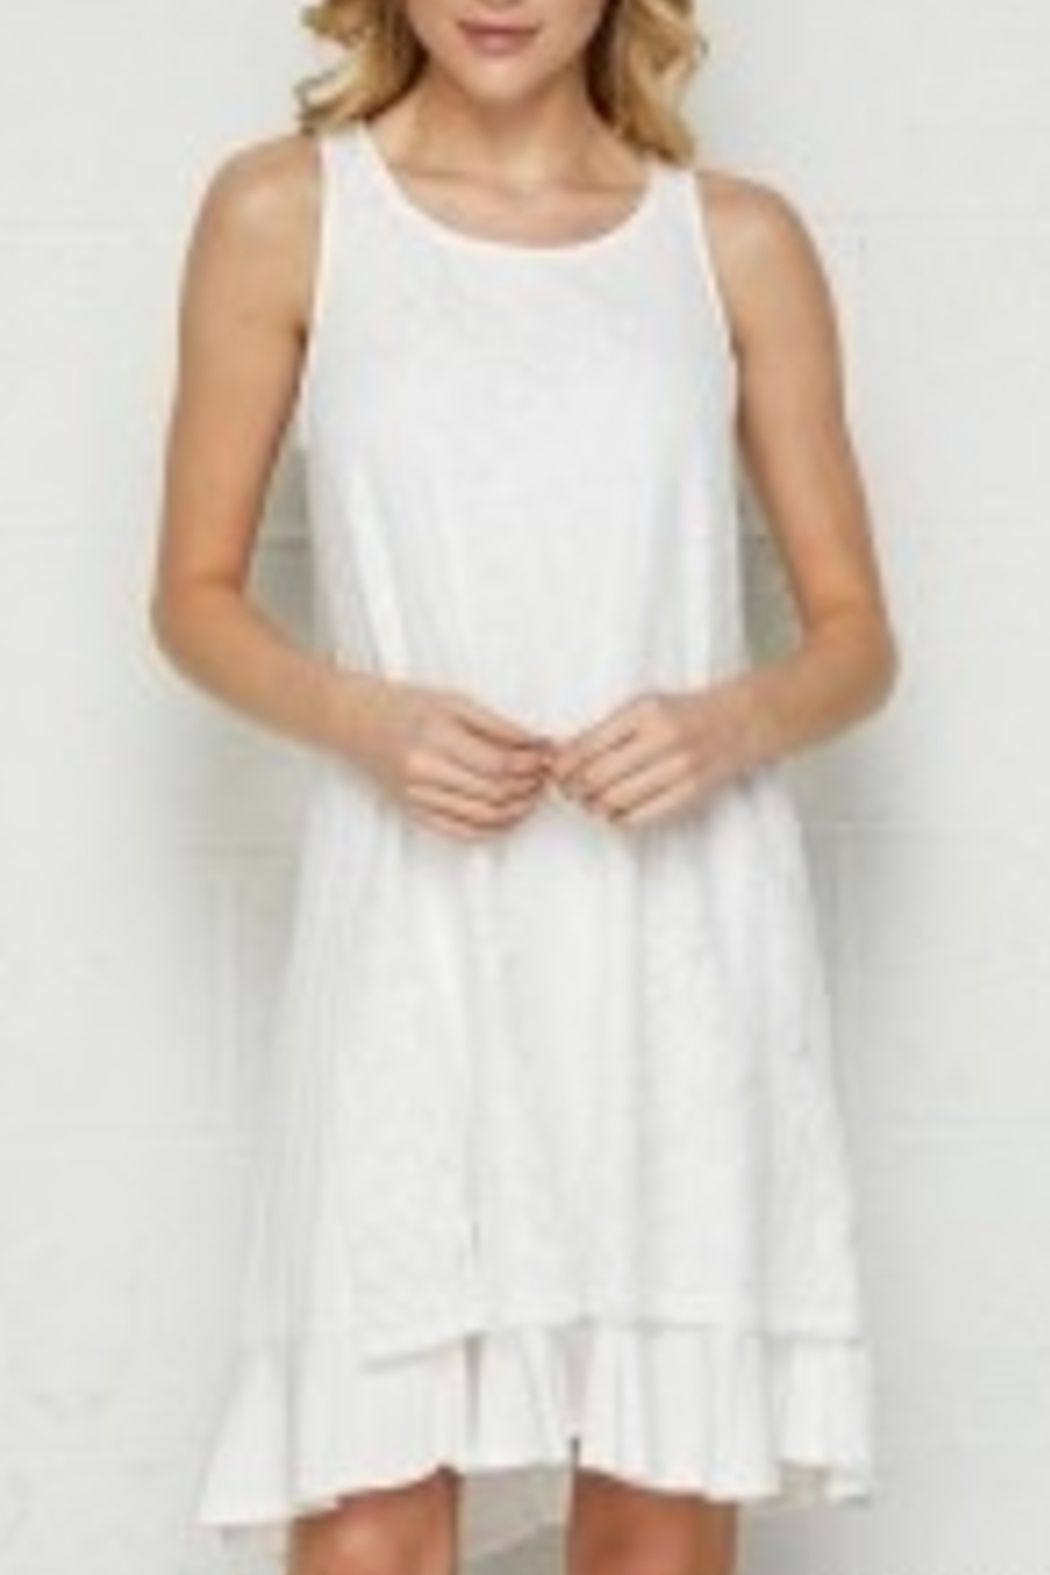 de4207349539 honeyme Simple Lace dress from Mississippi by Exit 16 - Diamondhead ...